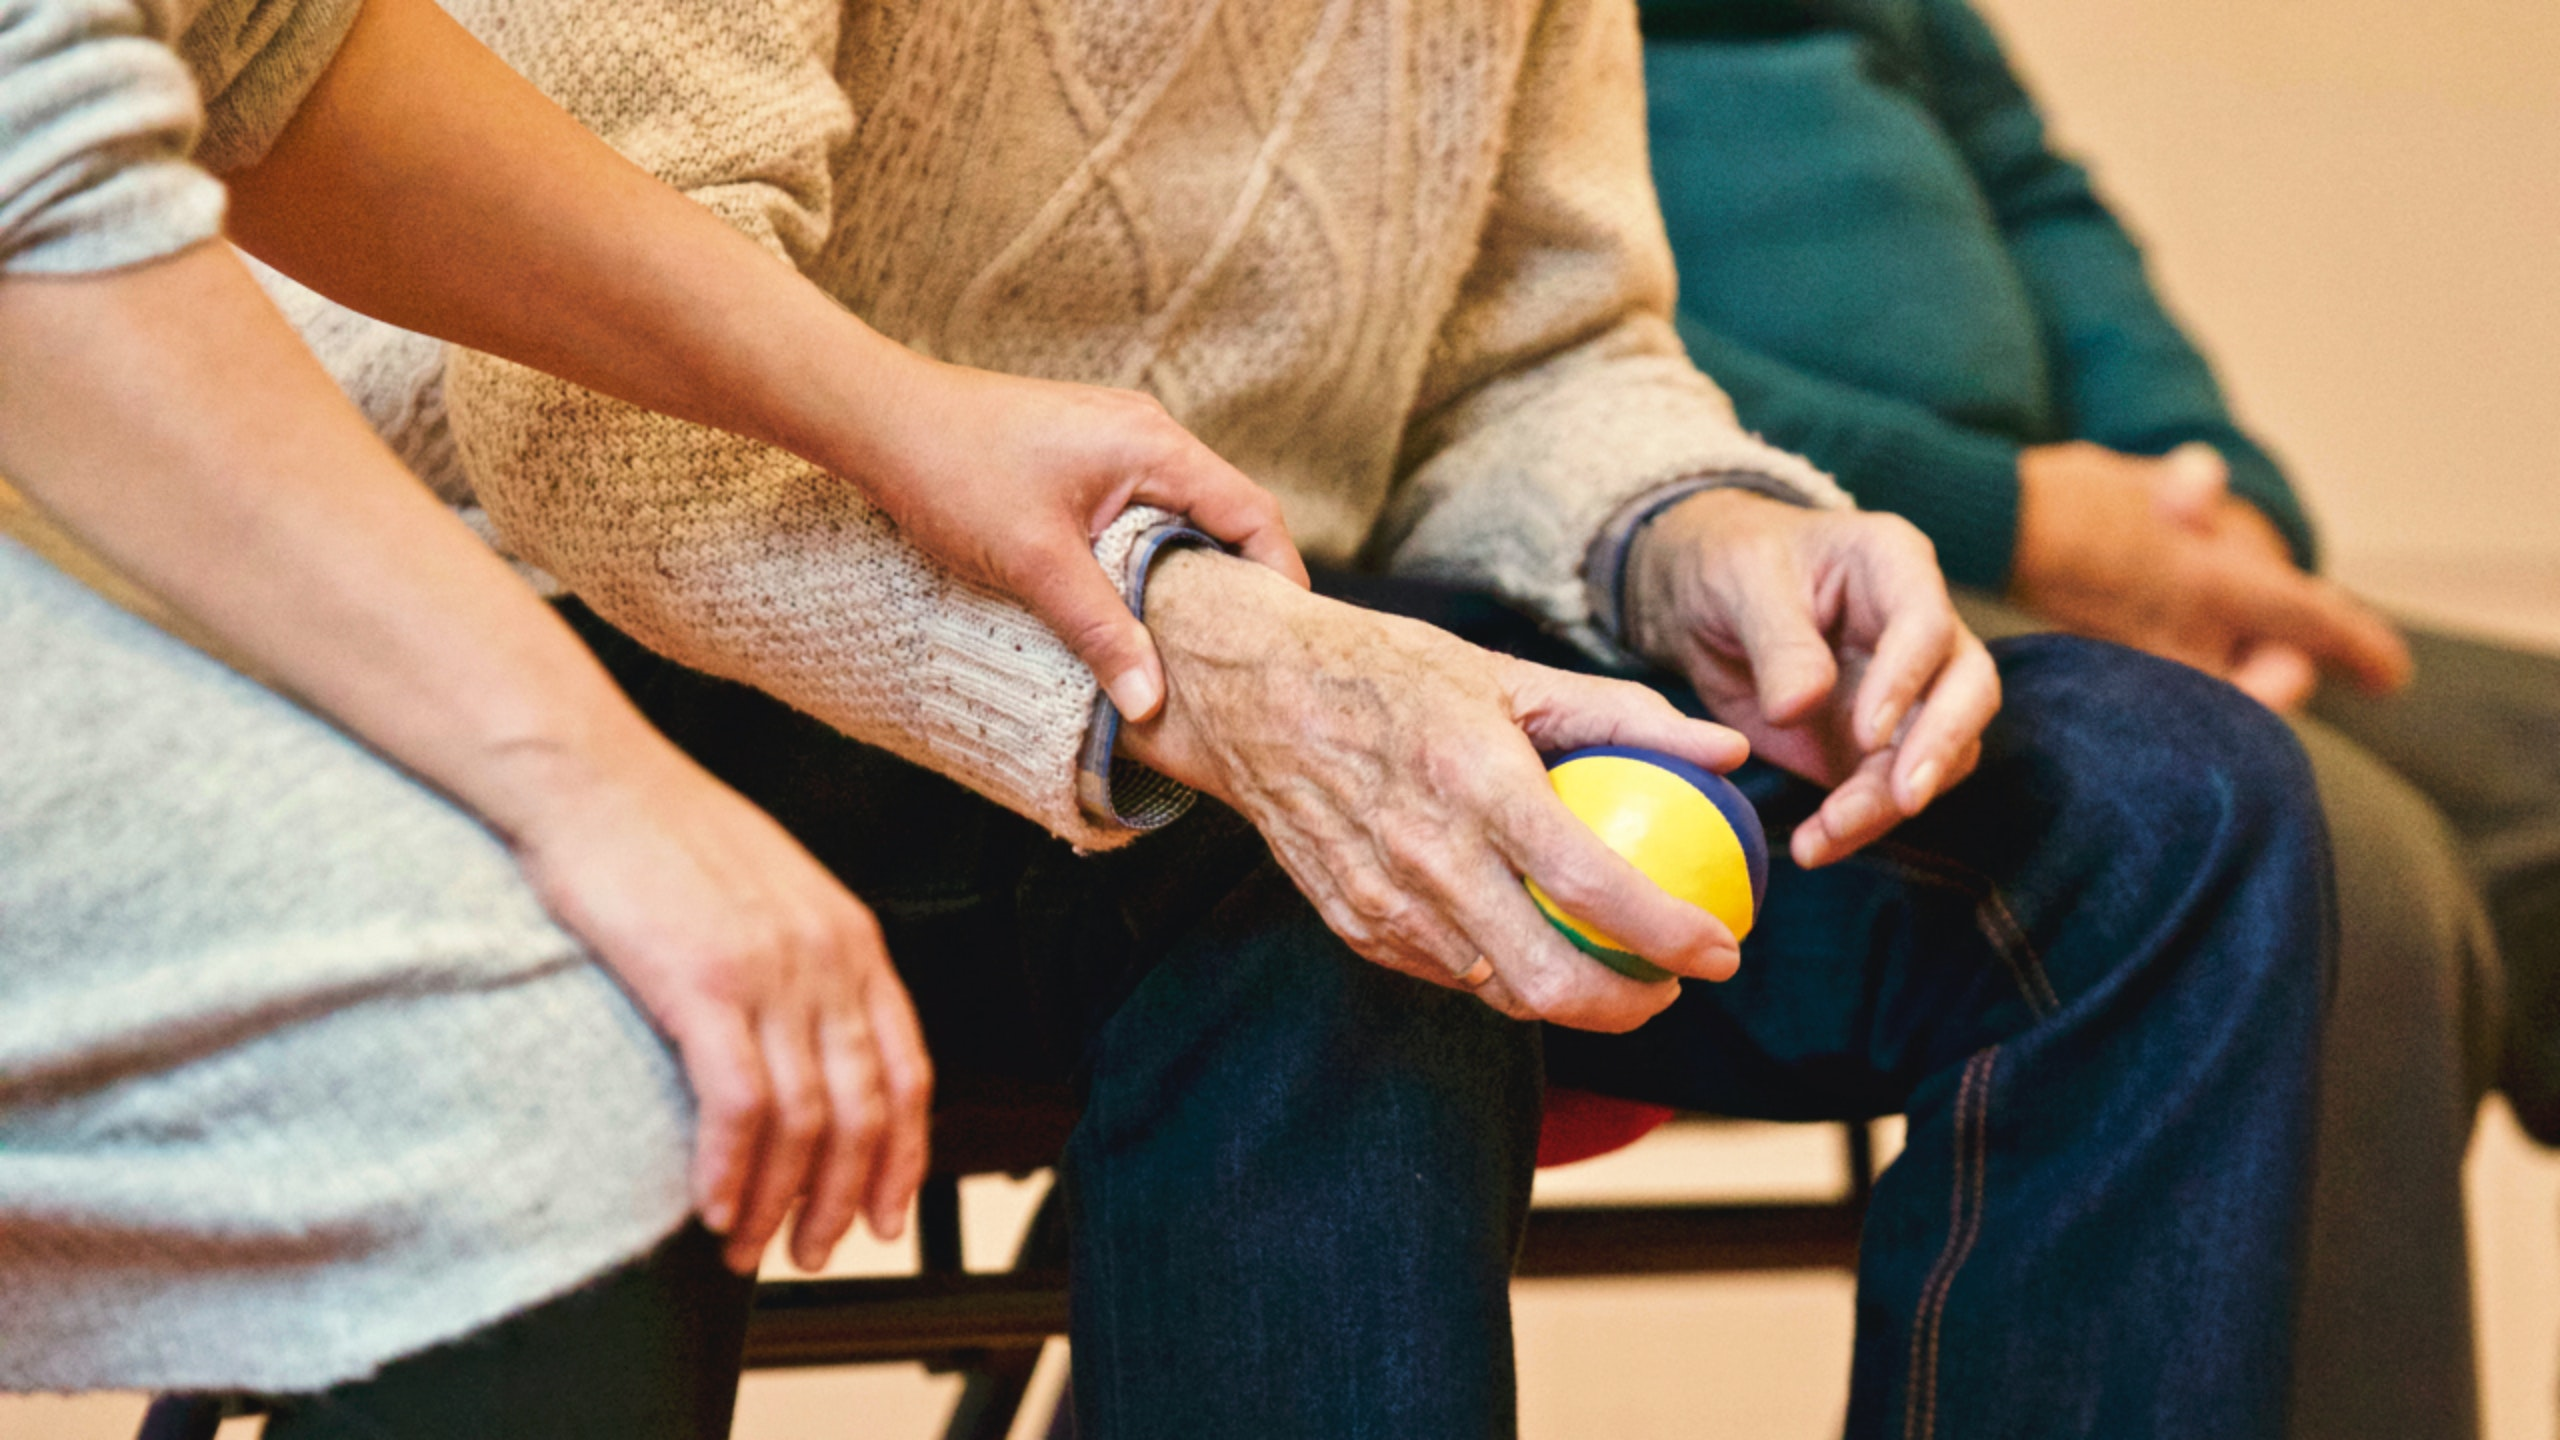 An elderly person holds a stress ball in one hand